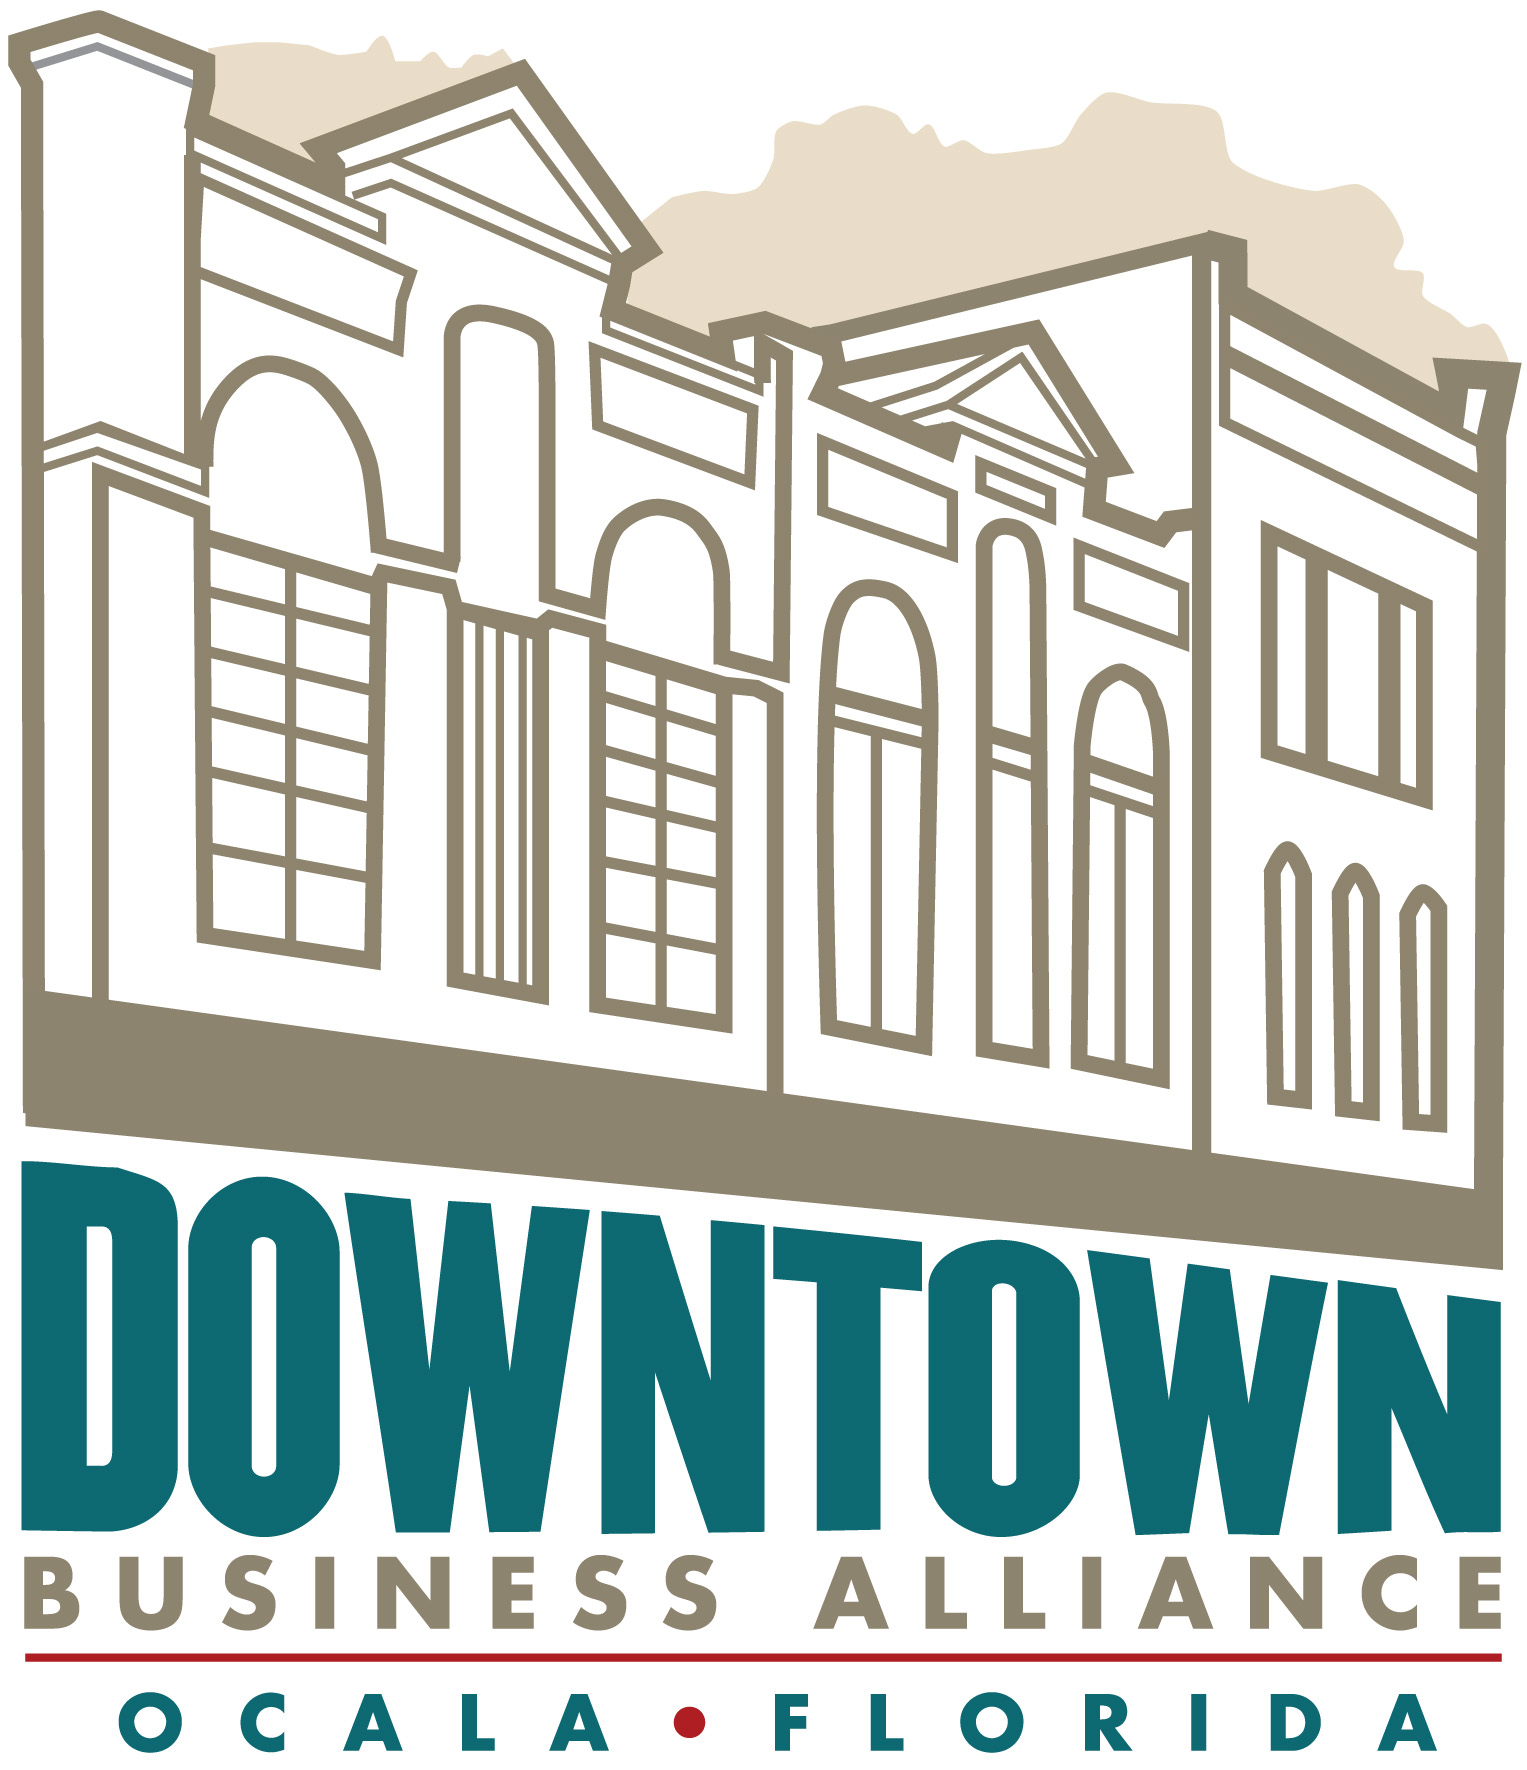 Ocala Downtown Business Alliance Ocala, Florida.